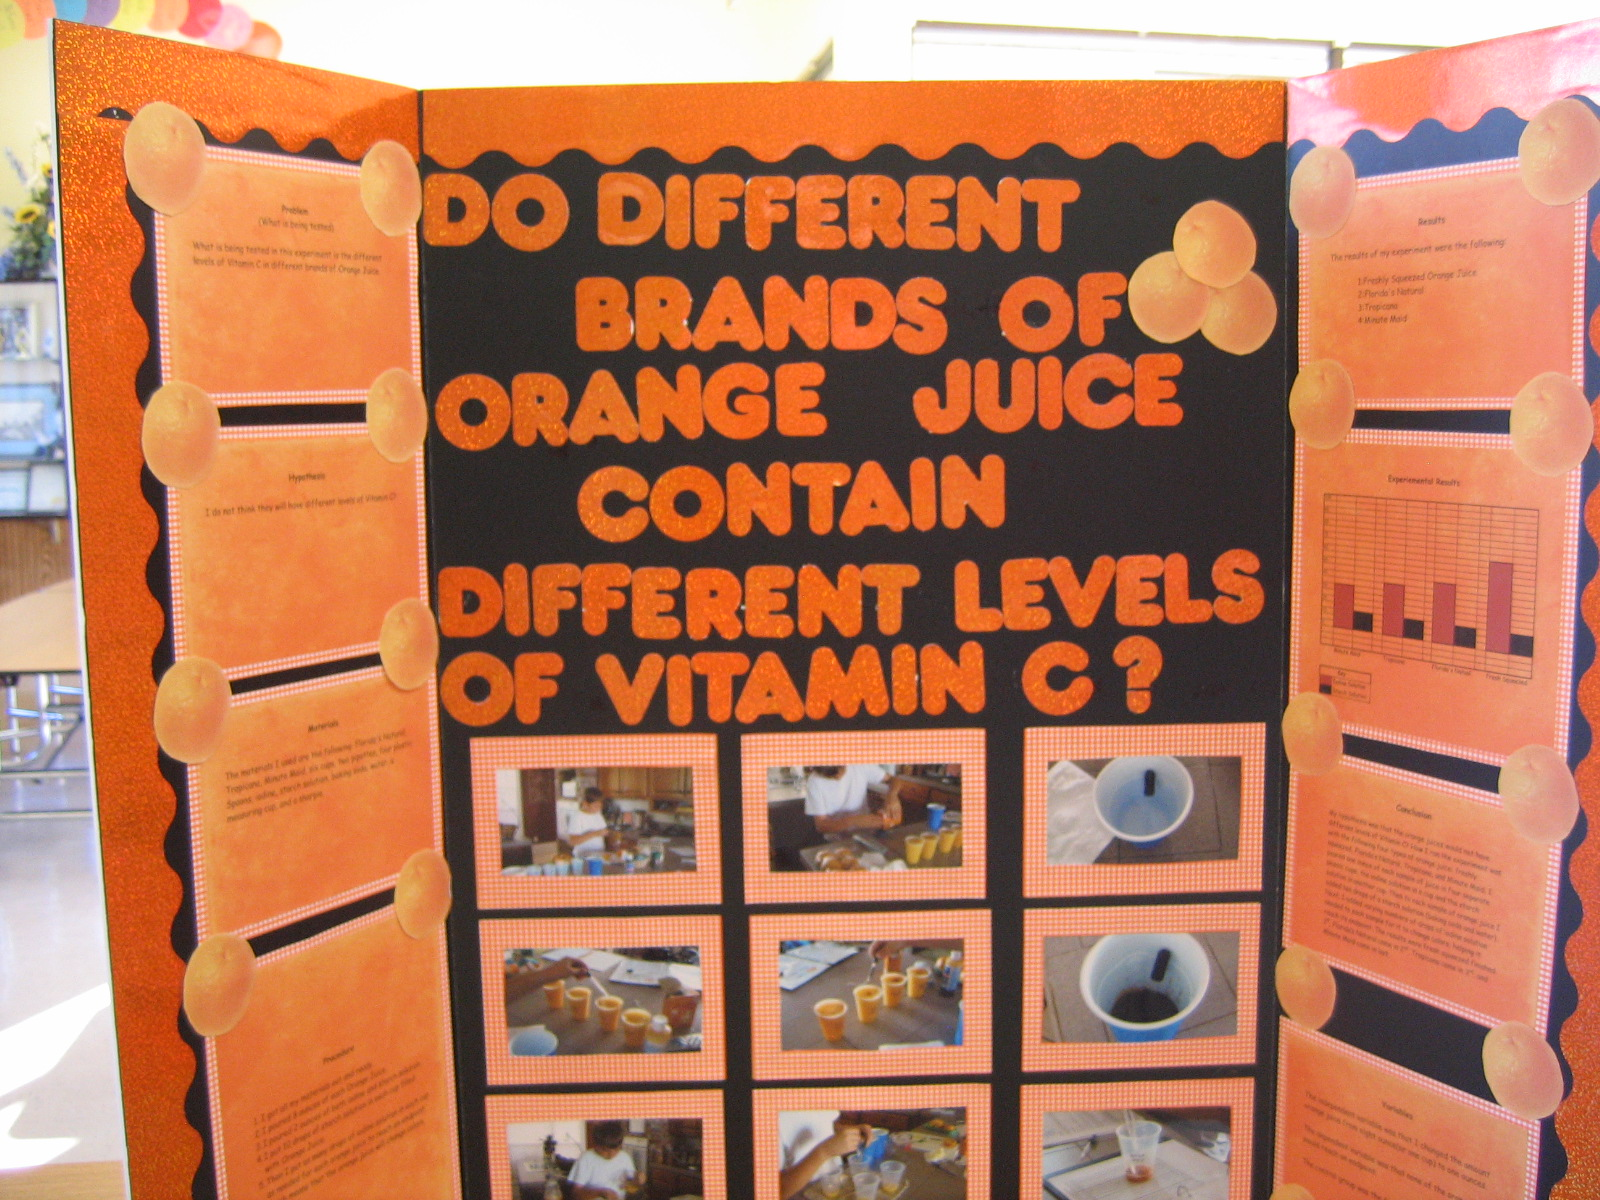 Do Different Brands Of Orange Juice Contain Different Levels Of Vitamin C